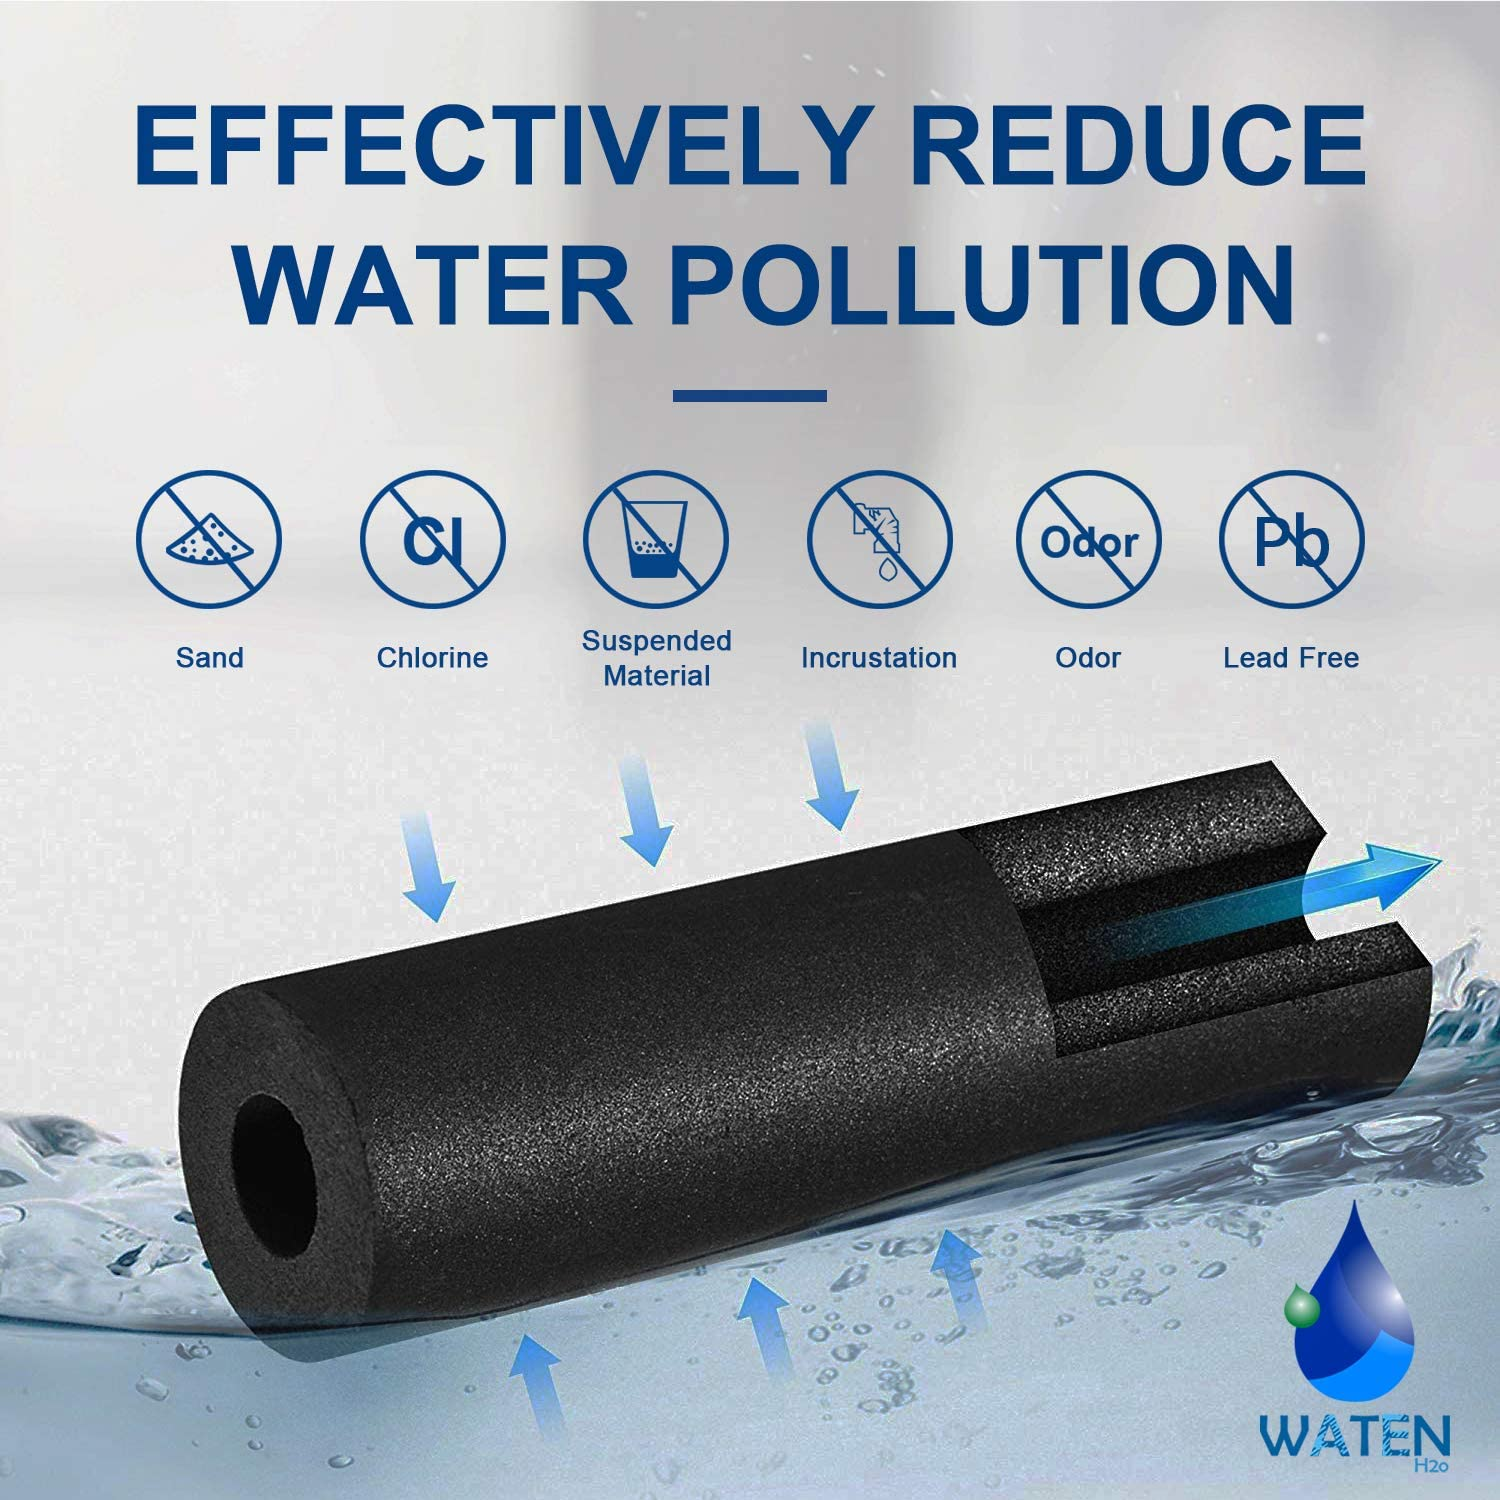 WATEN H2O W10295370a Water Filter Cap Replacement Compatible with EDR1RXD1 W10295370a Filter 1,Kenmore 46-9081 46-9930 Water Filters 3PACKS